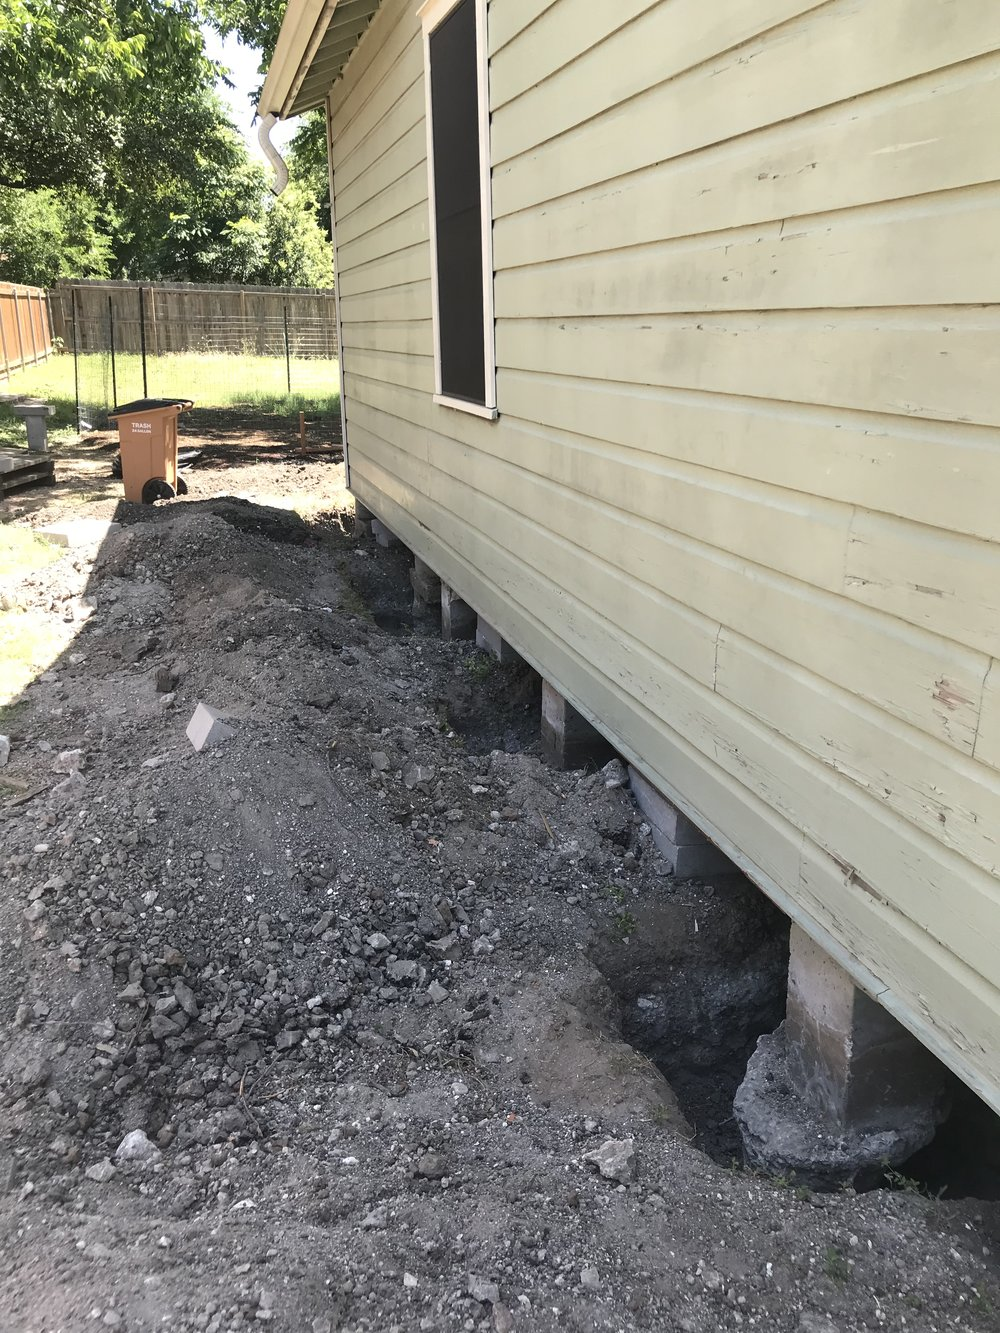 Digging new footings - It turns out the existing piers had no footings (!), so we had to dig around the piers so we could pour new ones. We are adding a second floor to the house, so the piers will have to take on extra load.